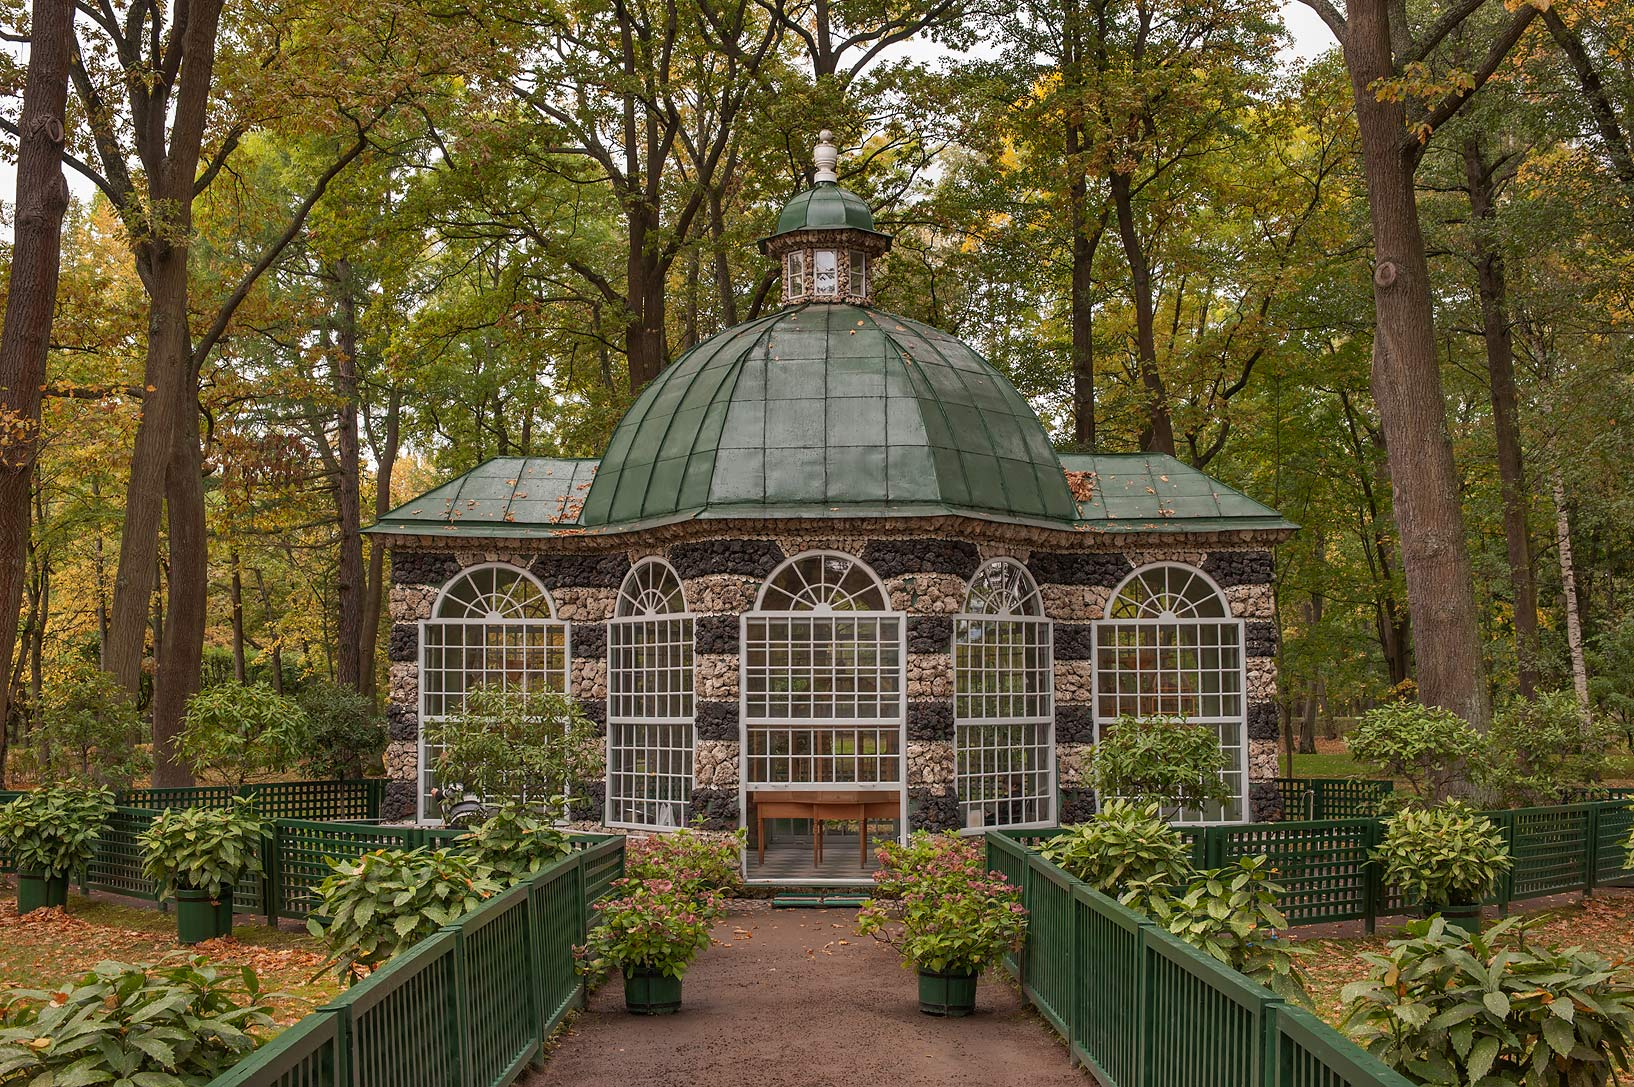 Volier Pavilion (West) in Lower Gardens. Peterhof...a suburb of St.Petersburg. Russia